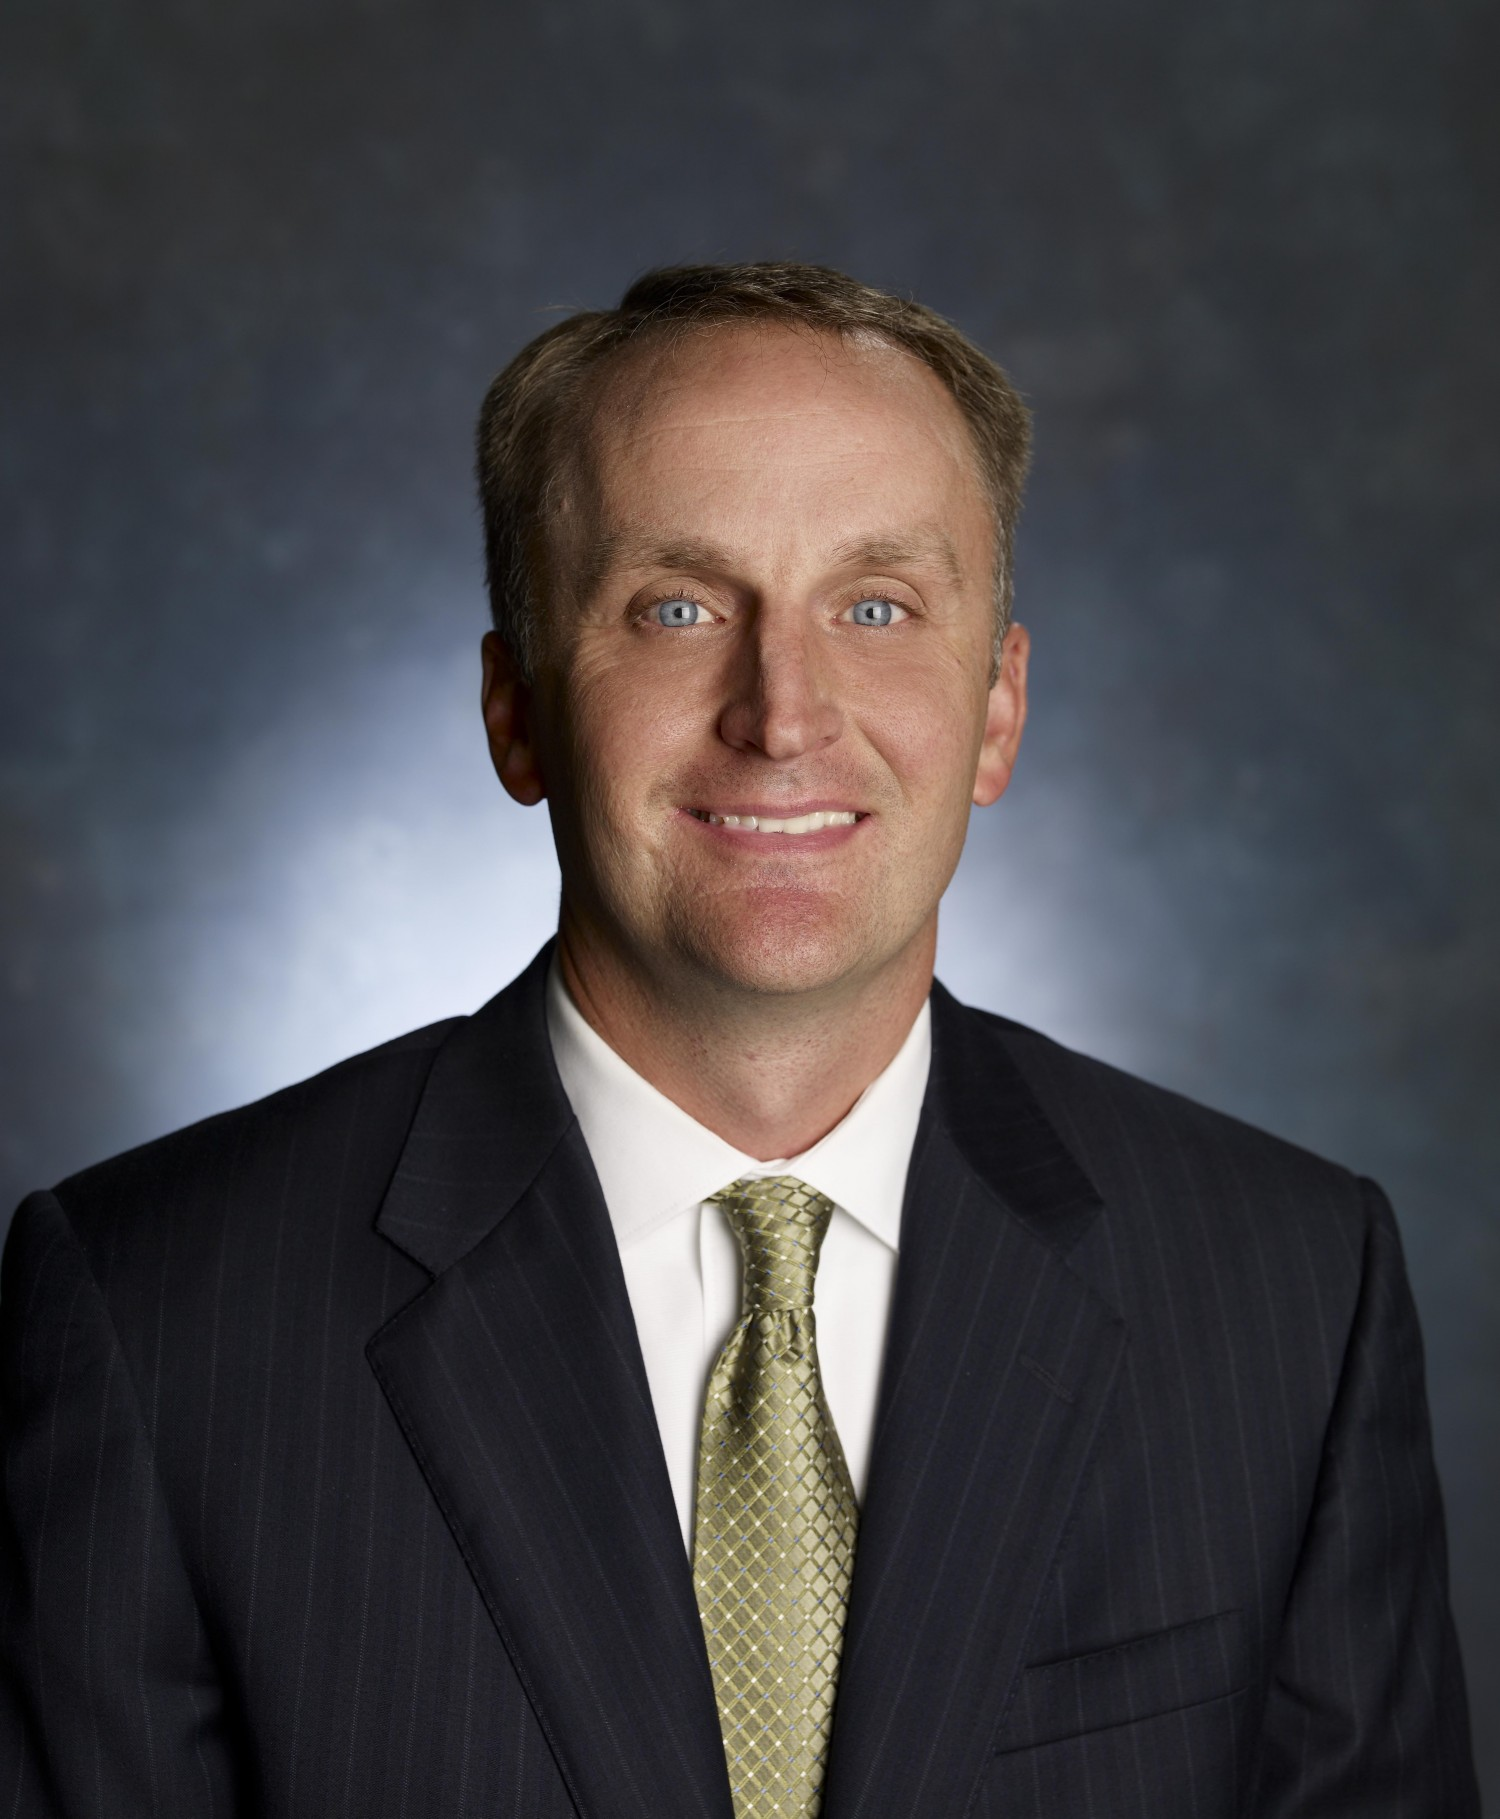 photo of Terry Forde, President and CEO Adventist HealthCare